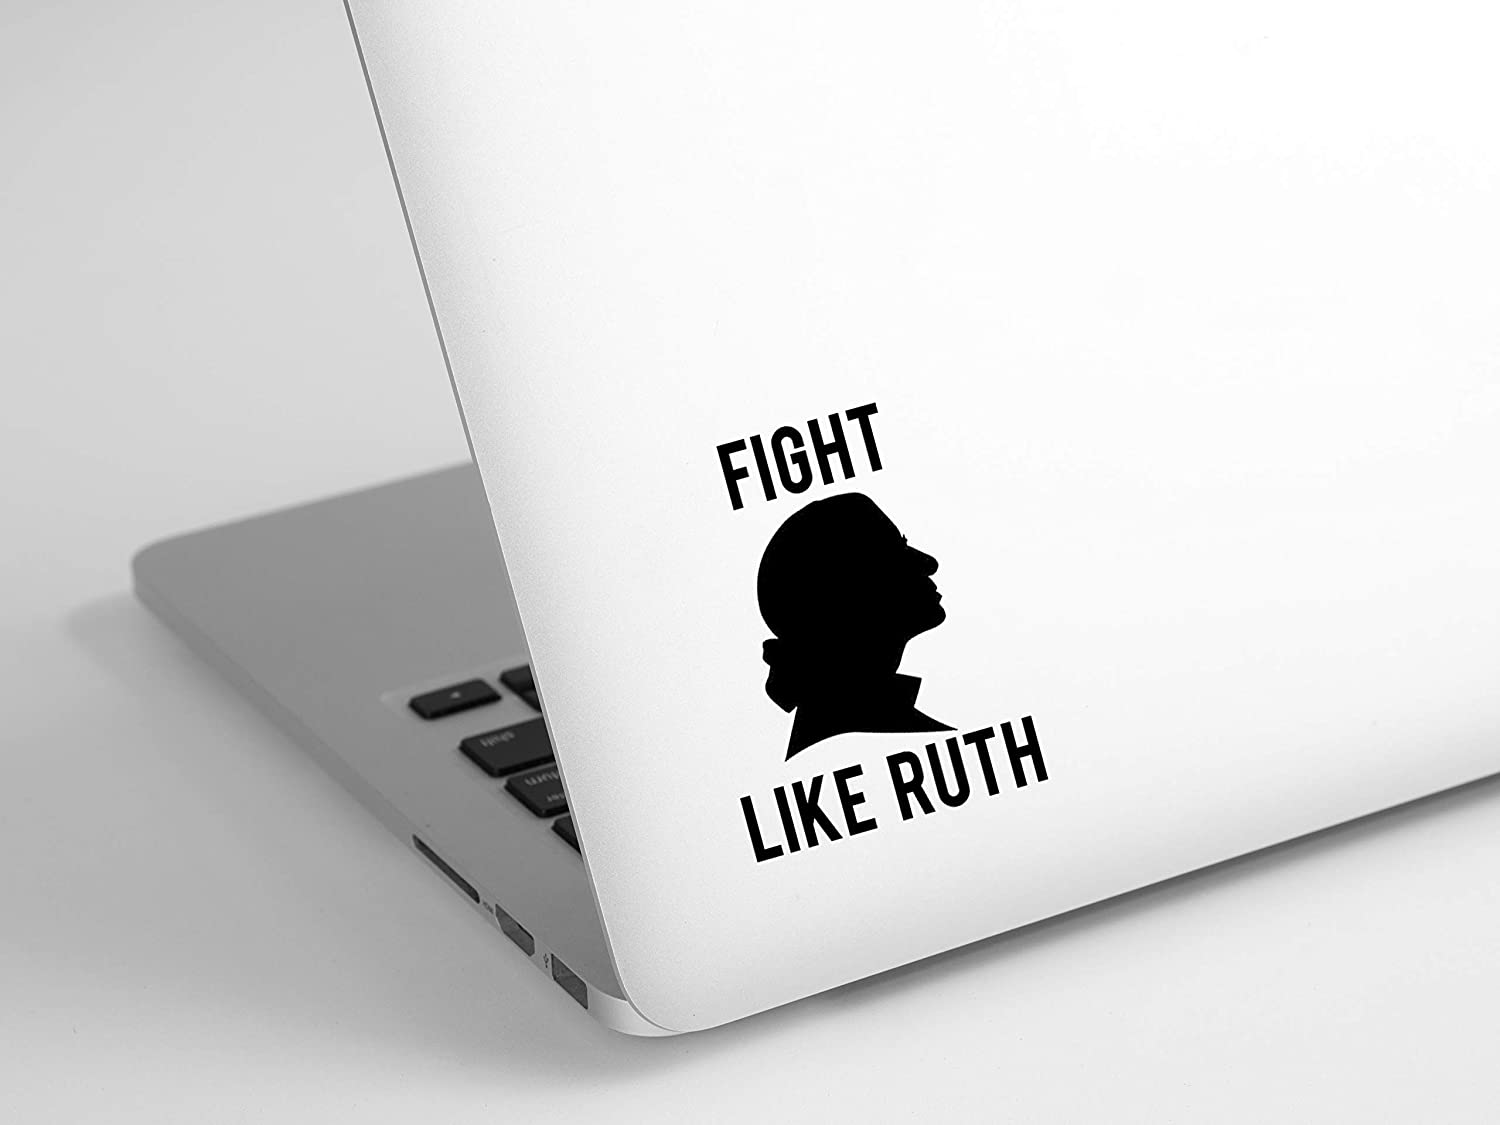 Fight like Ruth Bader Ginsburg RBG Sticker Decal for Laptop, Car, or Wall